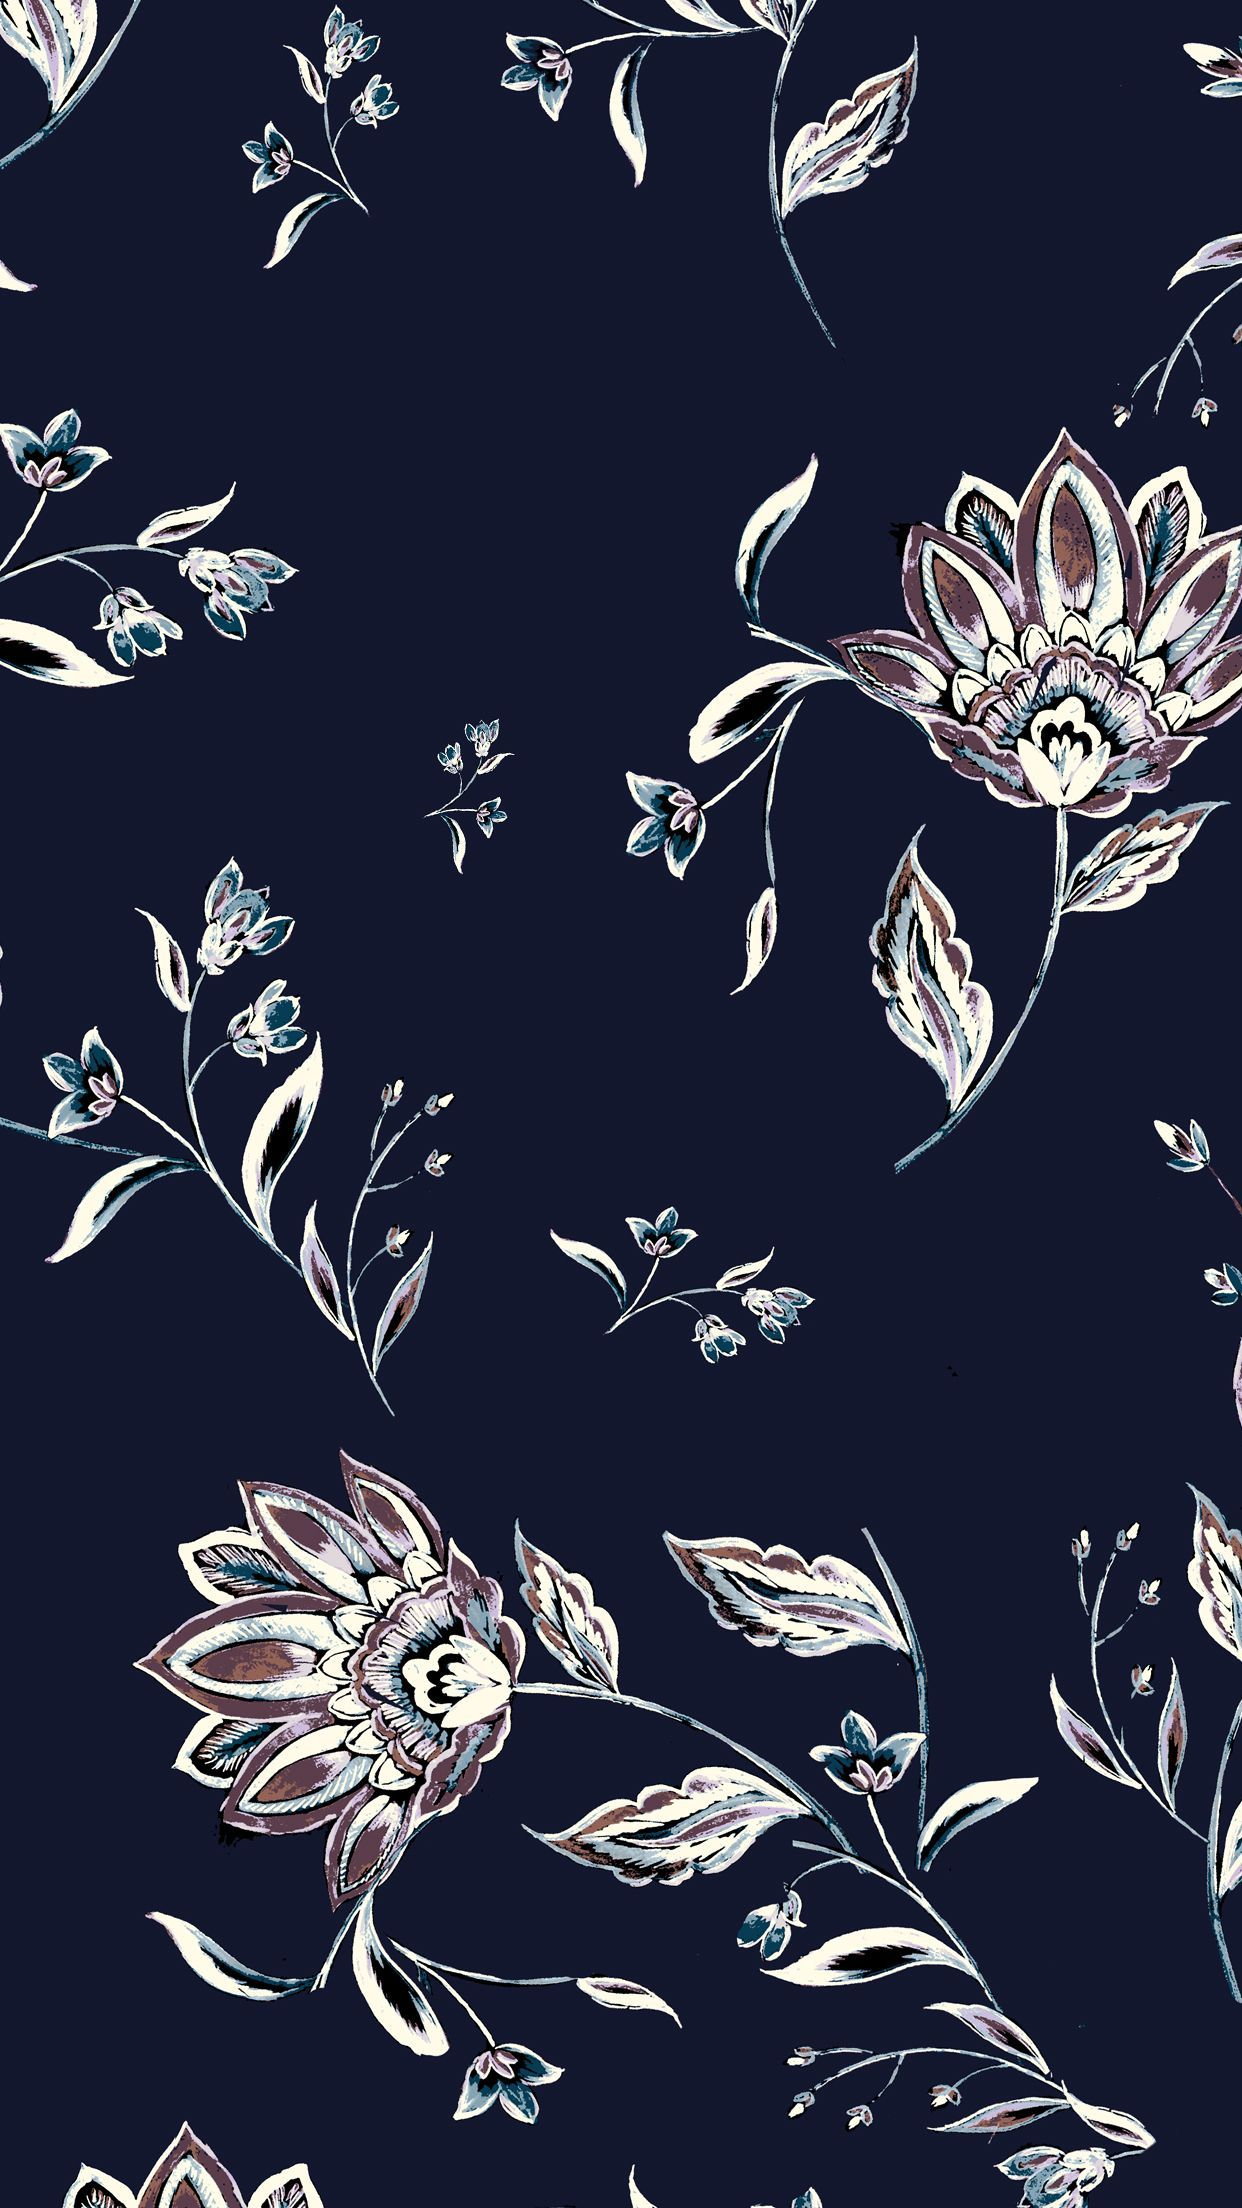 Awesome Floral Phone Wallpapers - WallpaperAccess